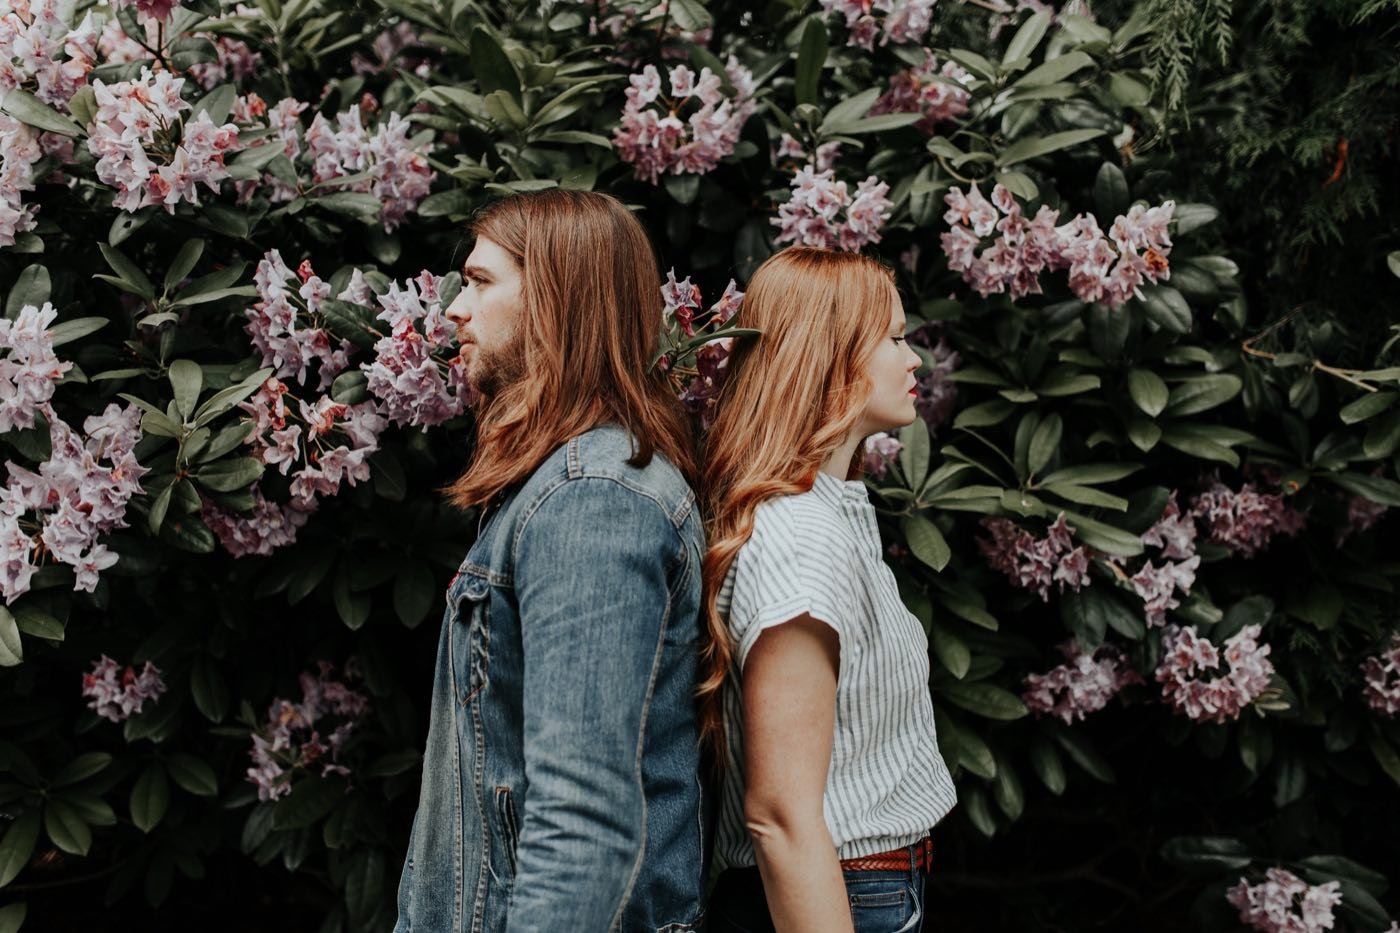 The 5 'Rs' of Relationships – Moving from 'Rupture' to 'Resilience'